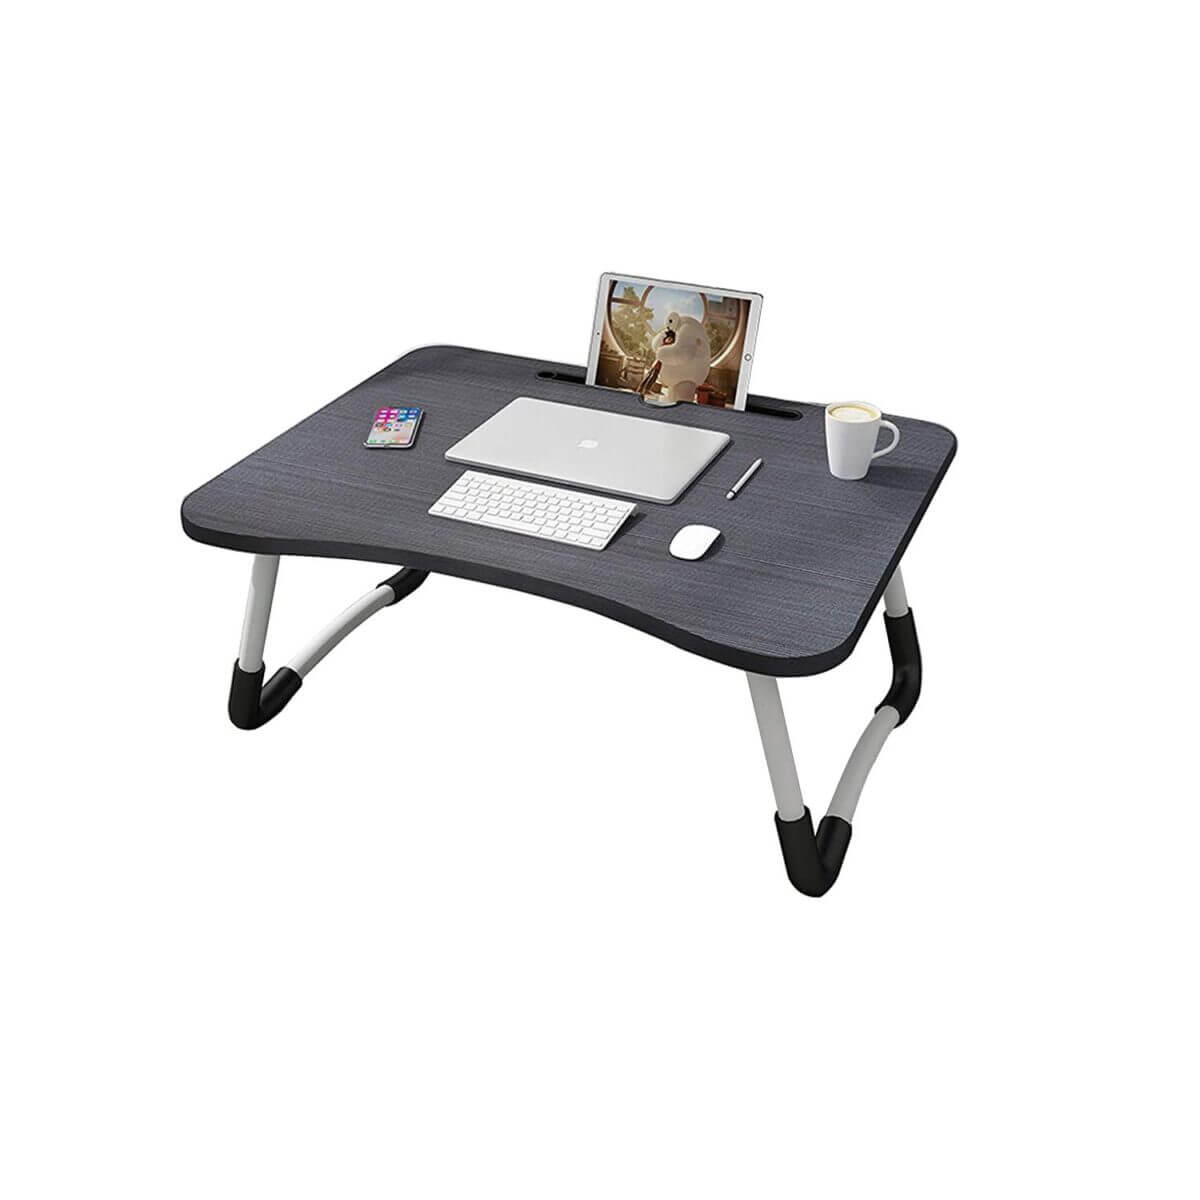 MemeHo Smart Multi-portable laptop table